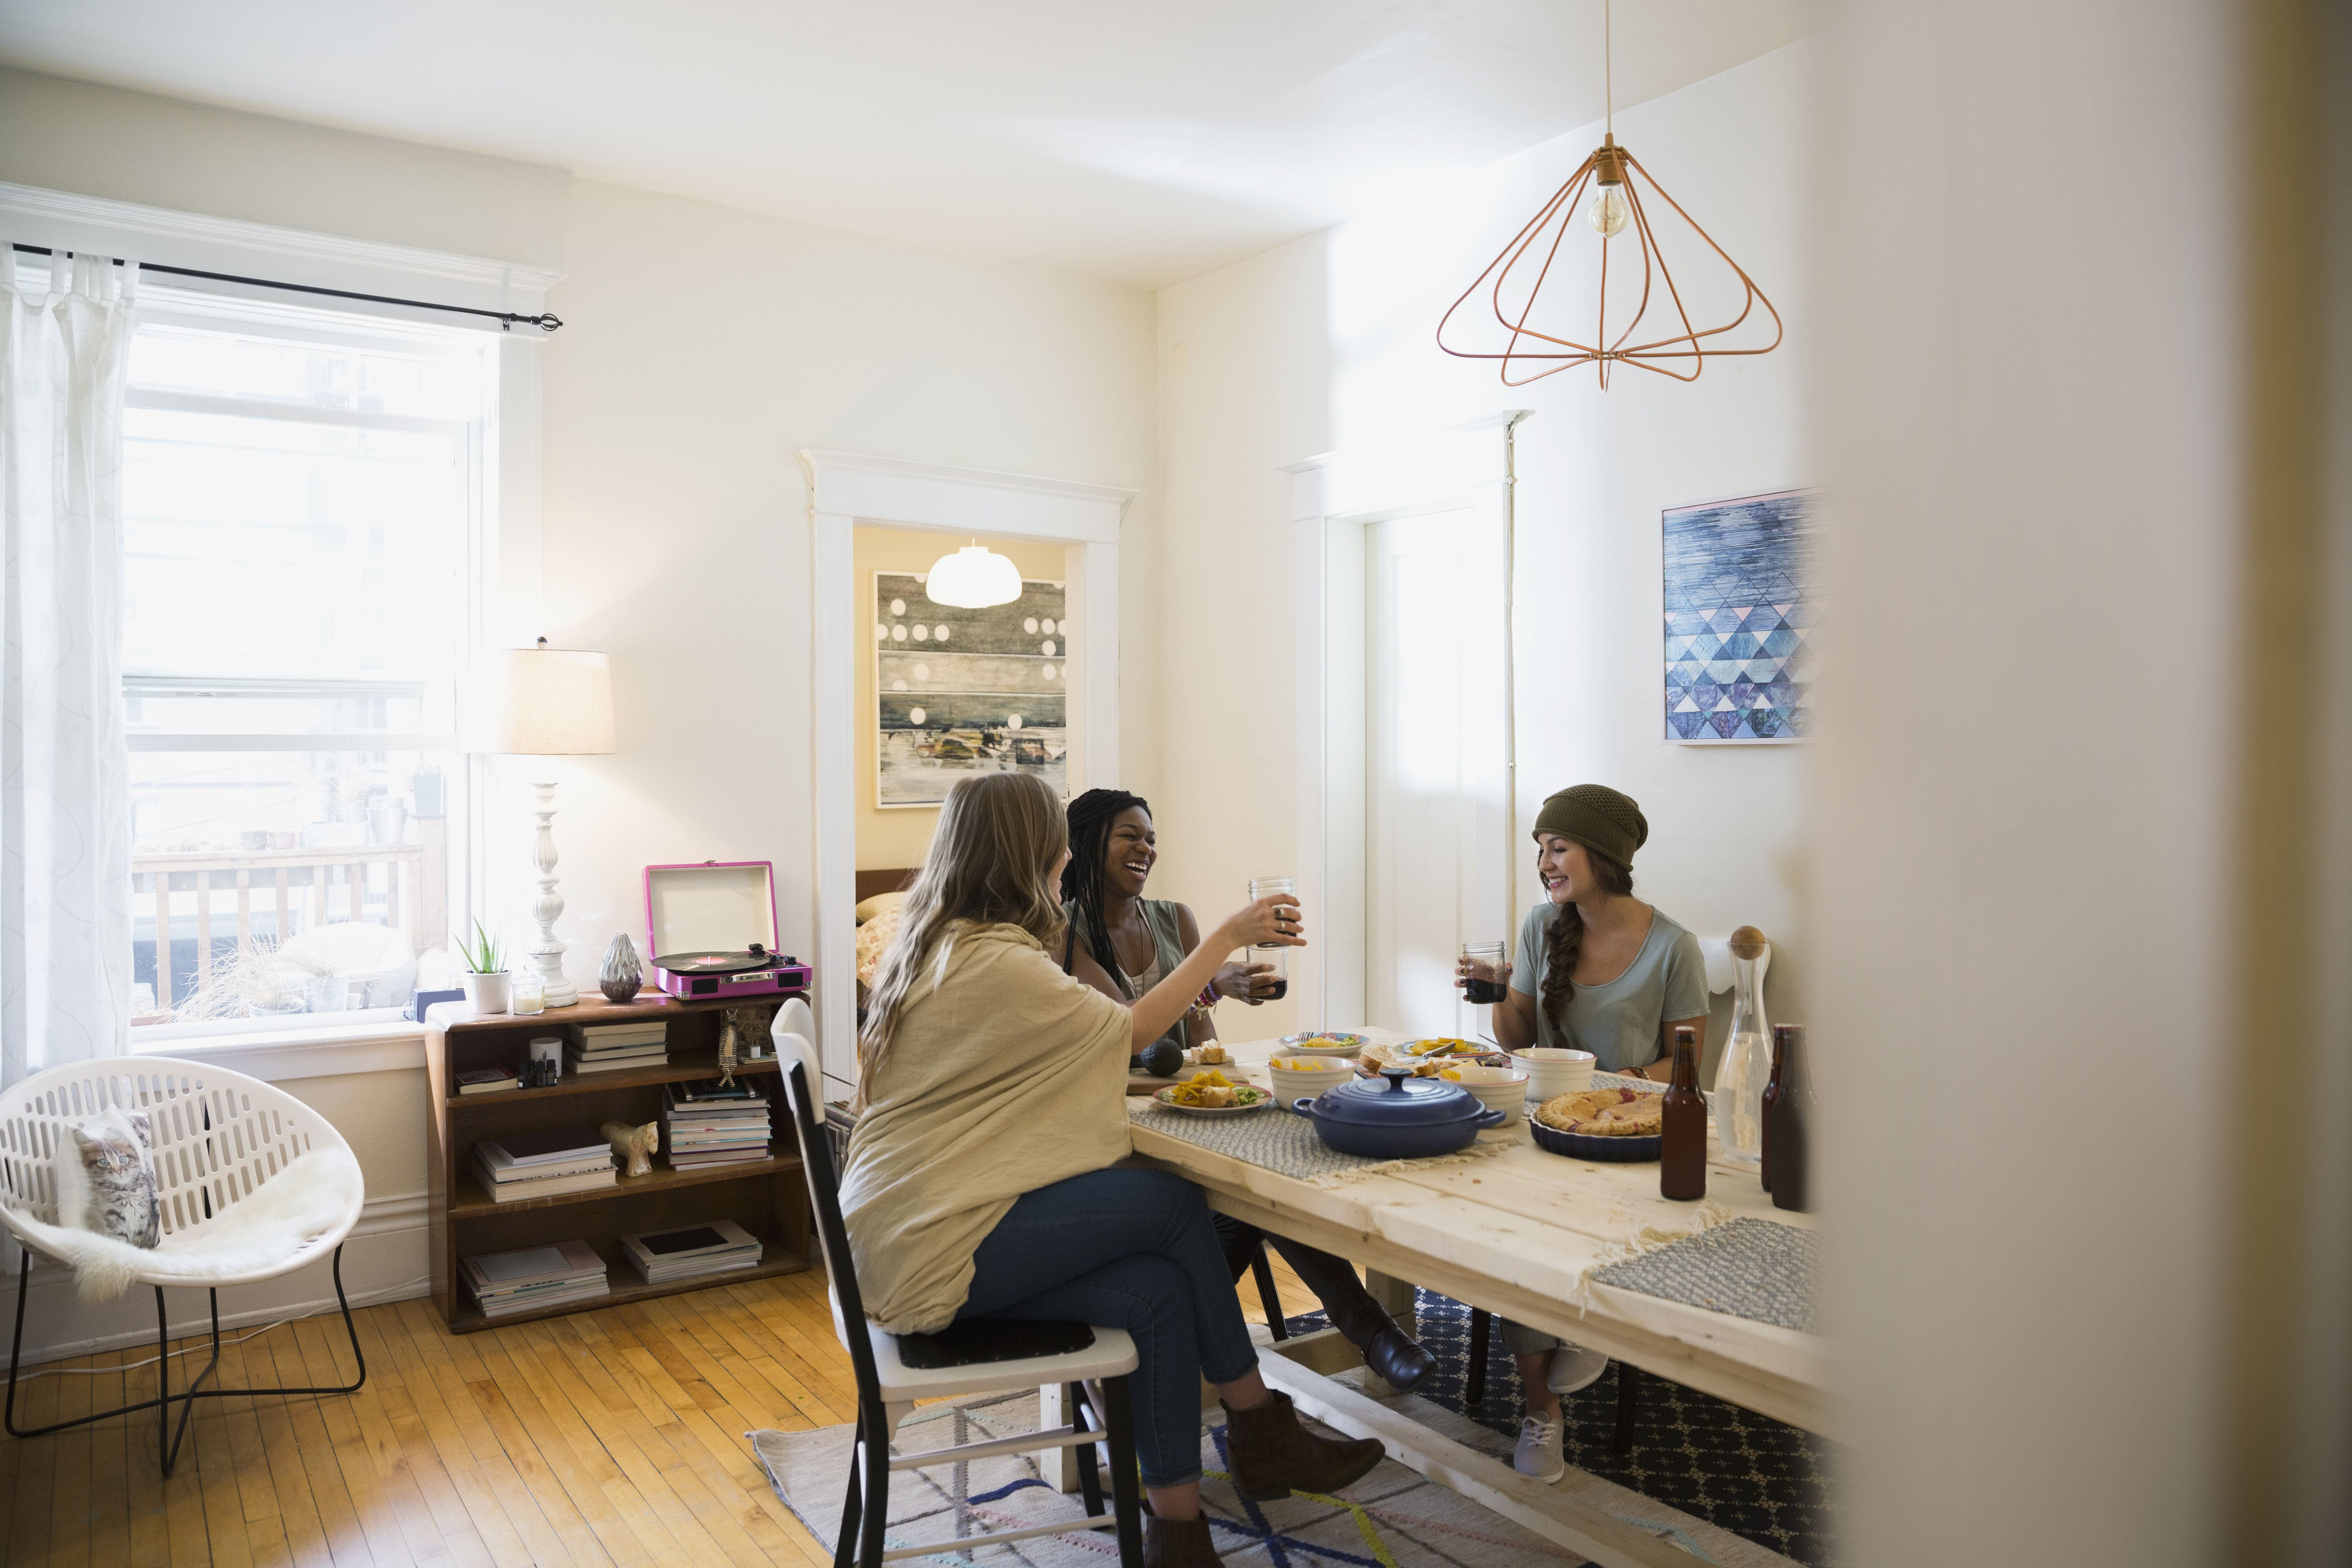 Home Decor Organizing Ideas For Young Adult Roommates